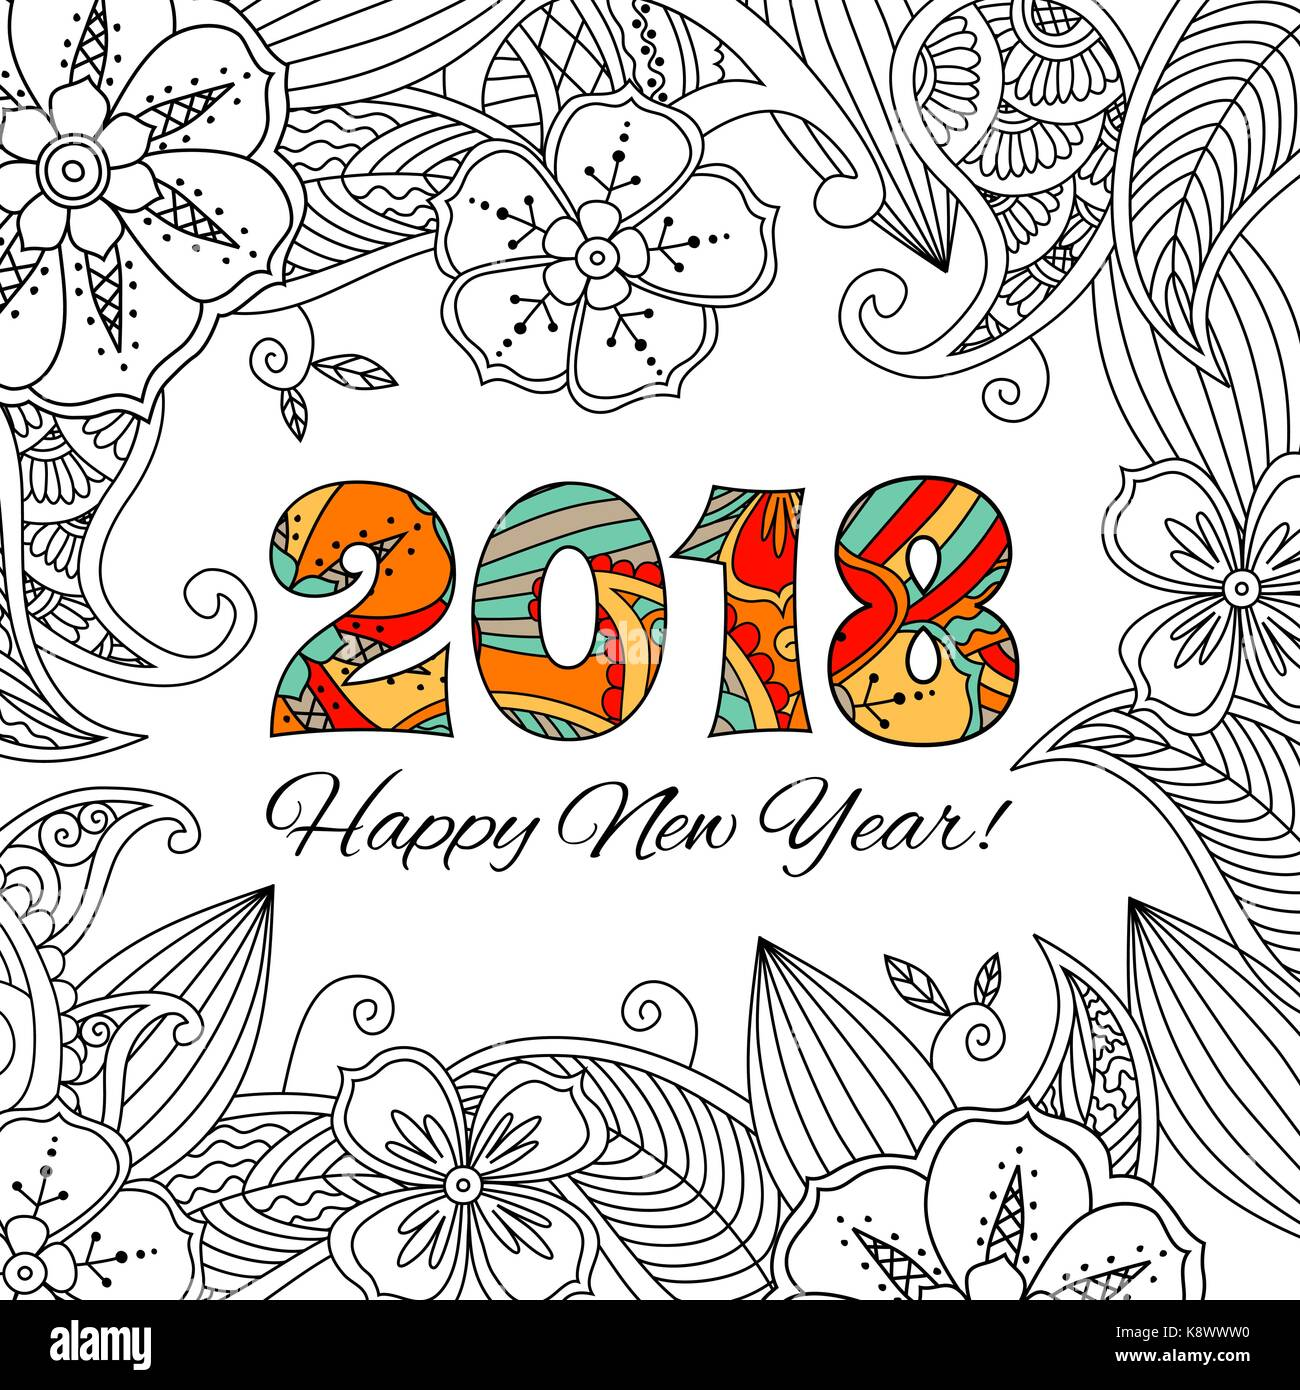 new year card with numbers 2018 on floral background